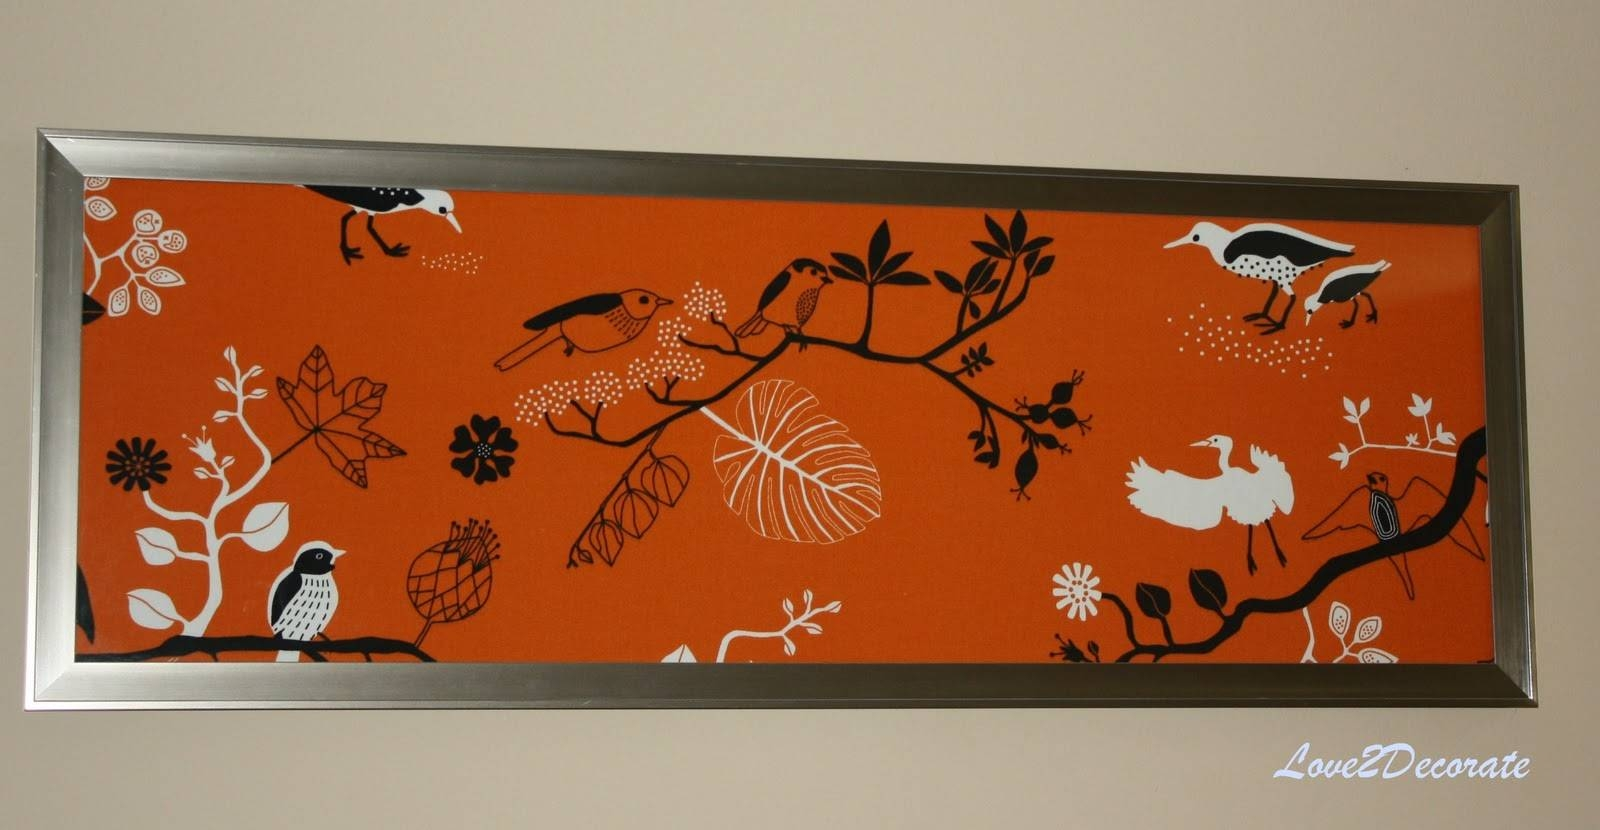 Love 2 Decorate: Frame + Fabric = Wall Art Throughout Most Current Framed Fabric Wall Art (View 18 of 20)